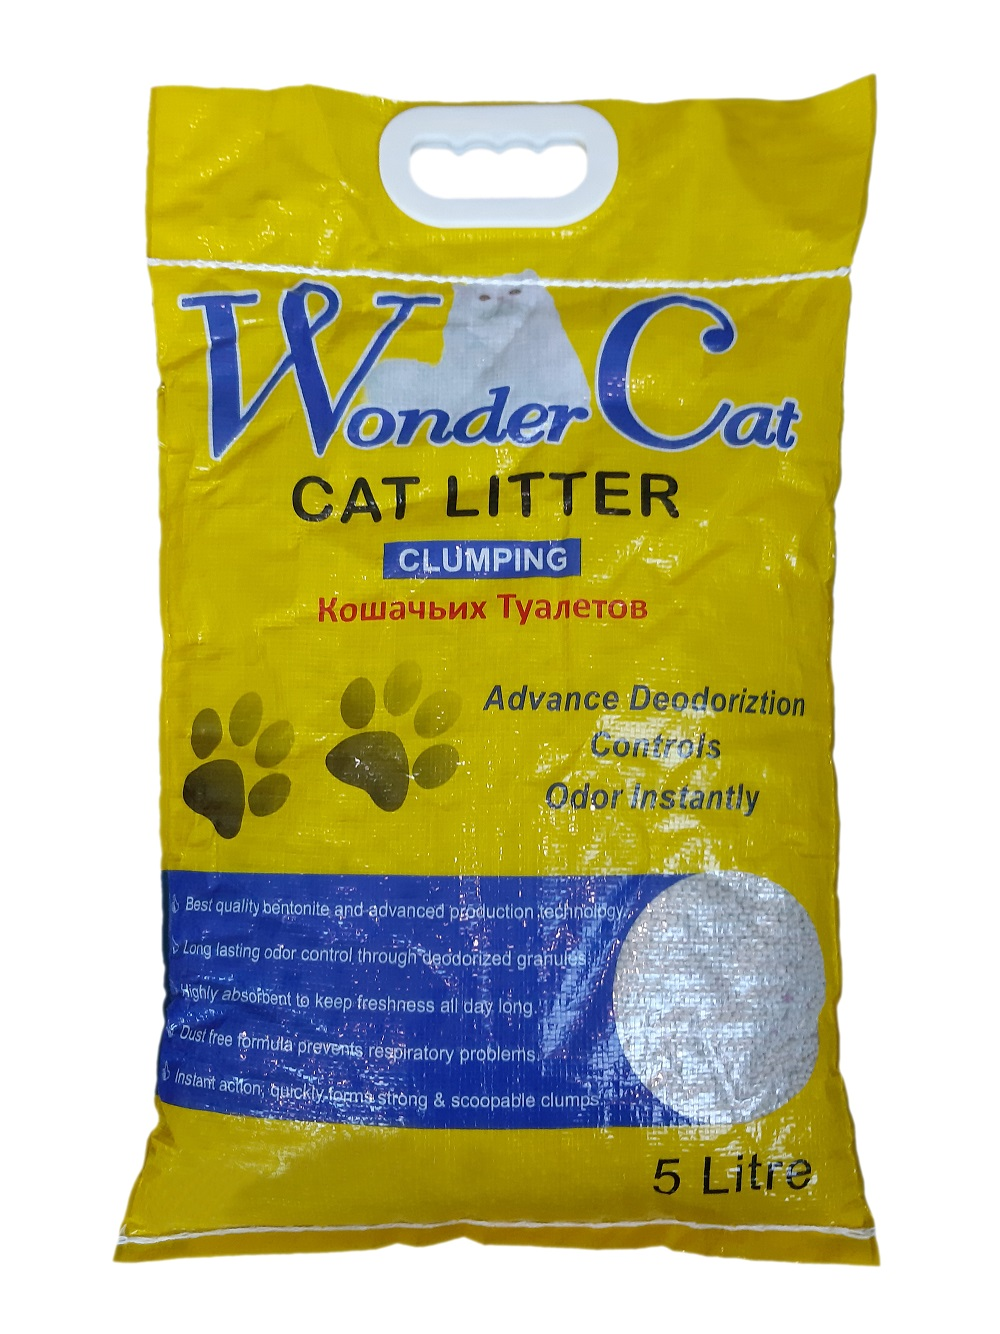 Wonder Cat Litter Deoderized No Scent - 5Litre - Pet Accessories - Pet Store - Pet supplies